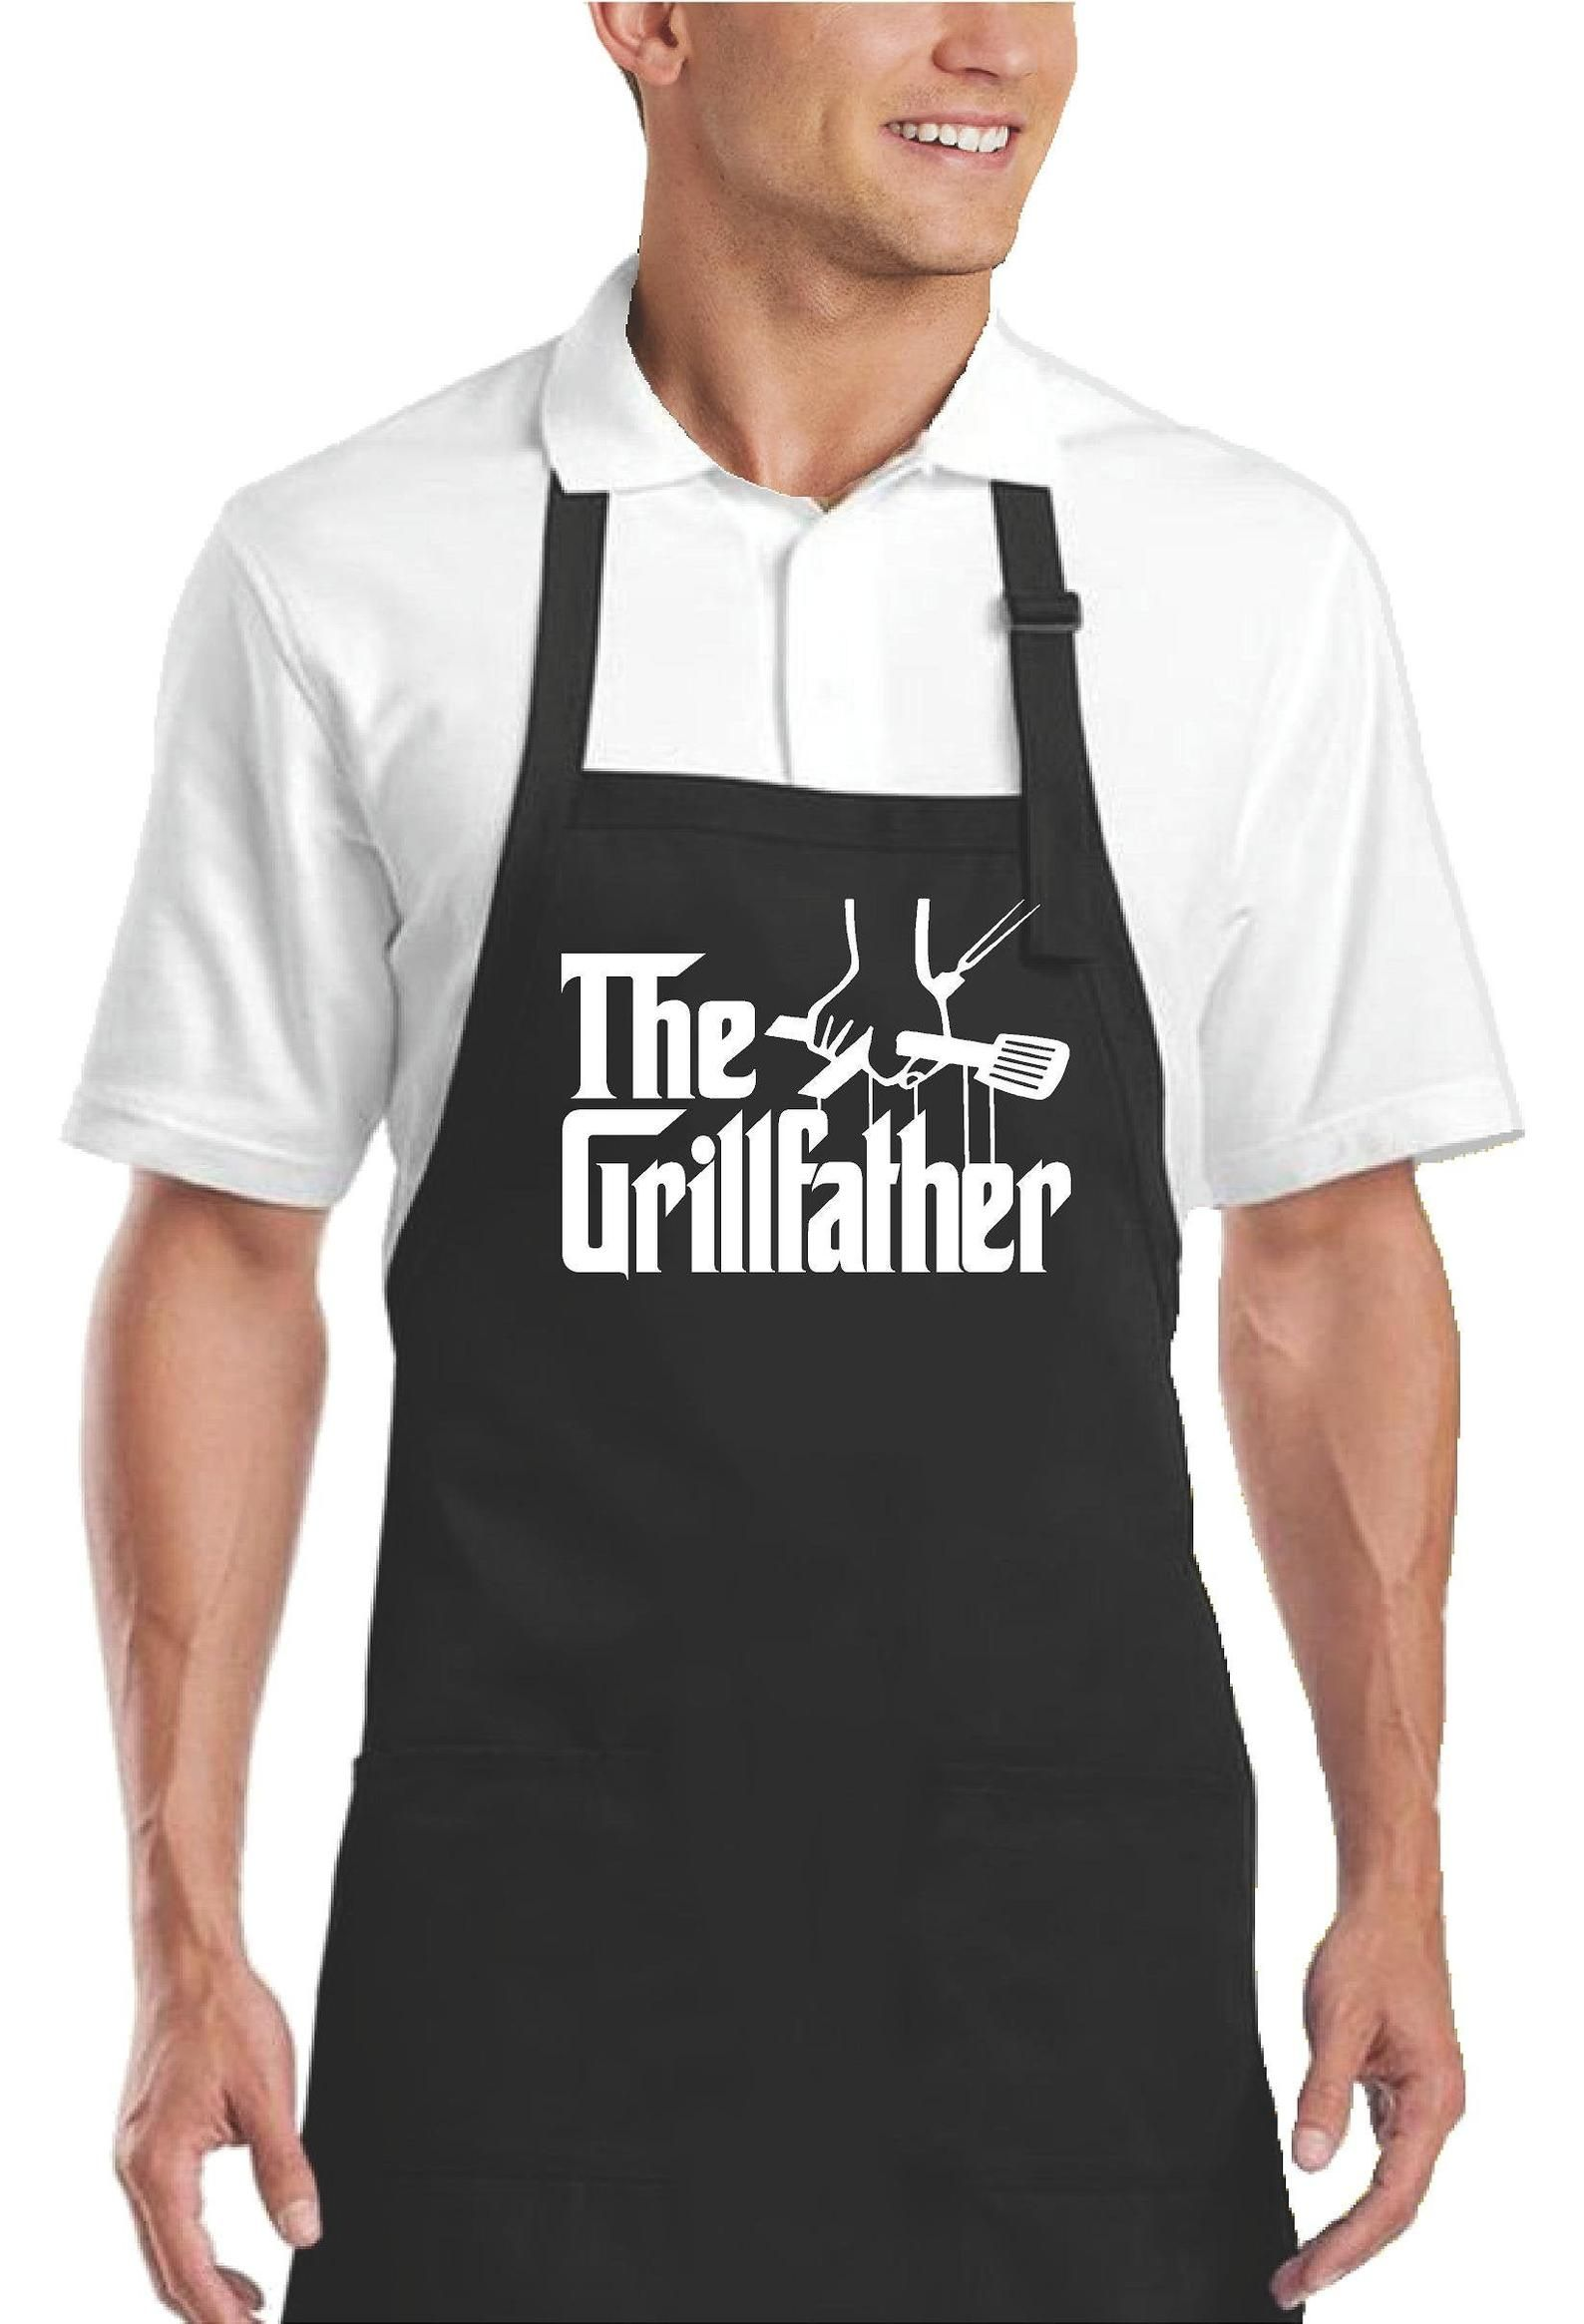 Aprons for Men Grilling Apron for Dad Funny Apron with | Etsy in